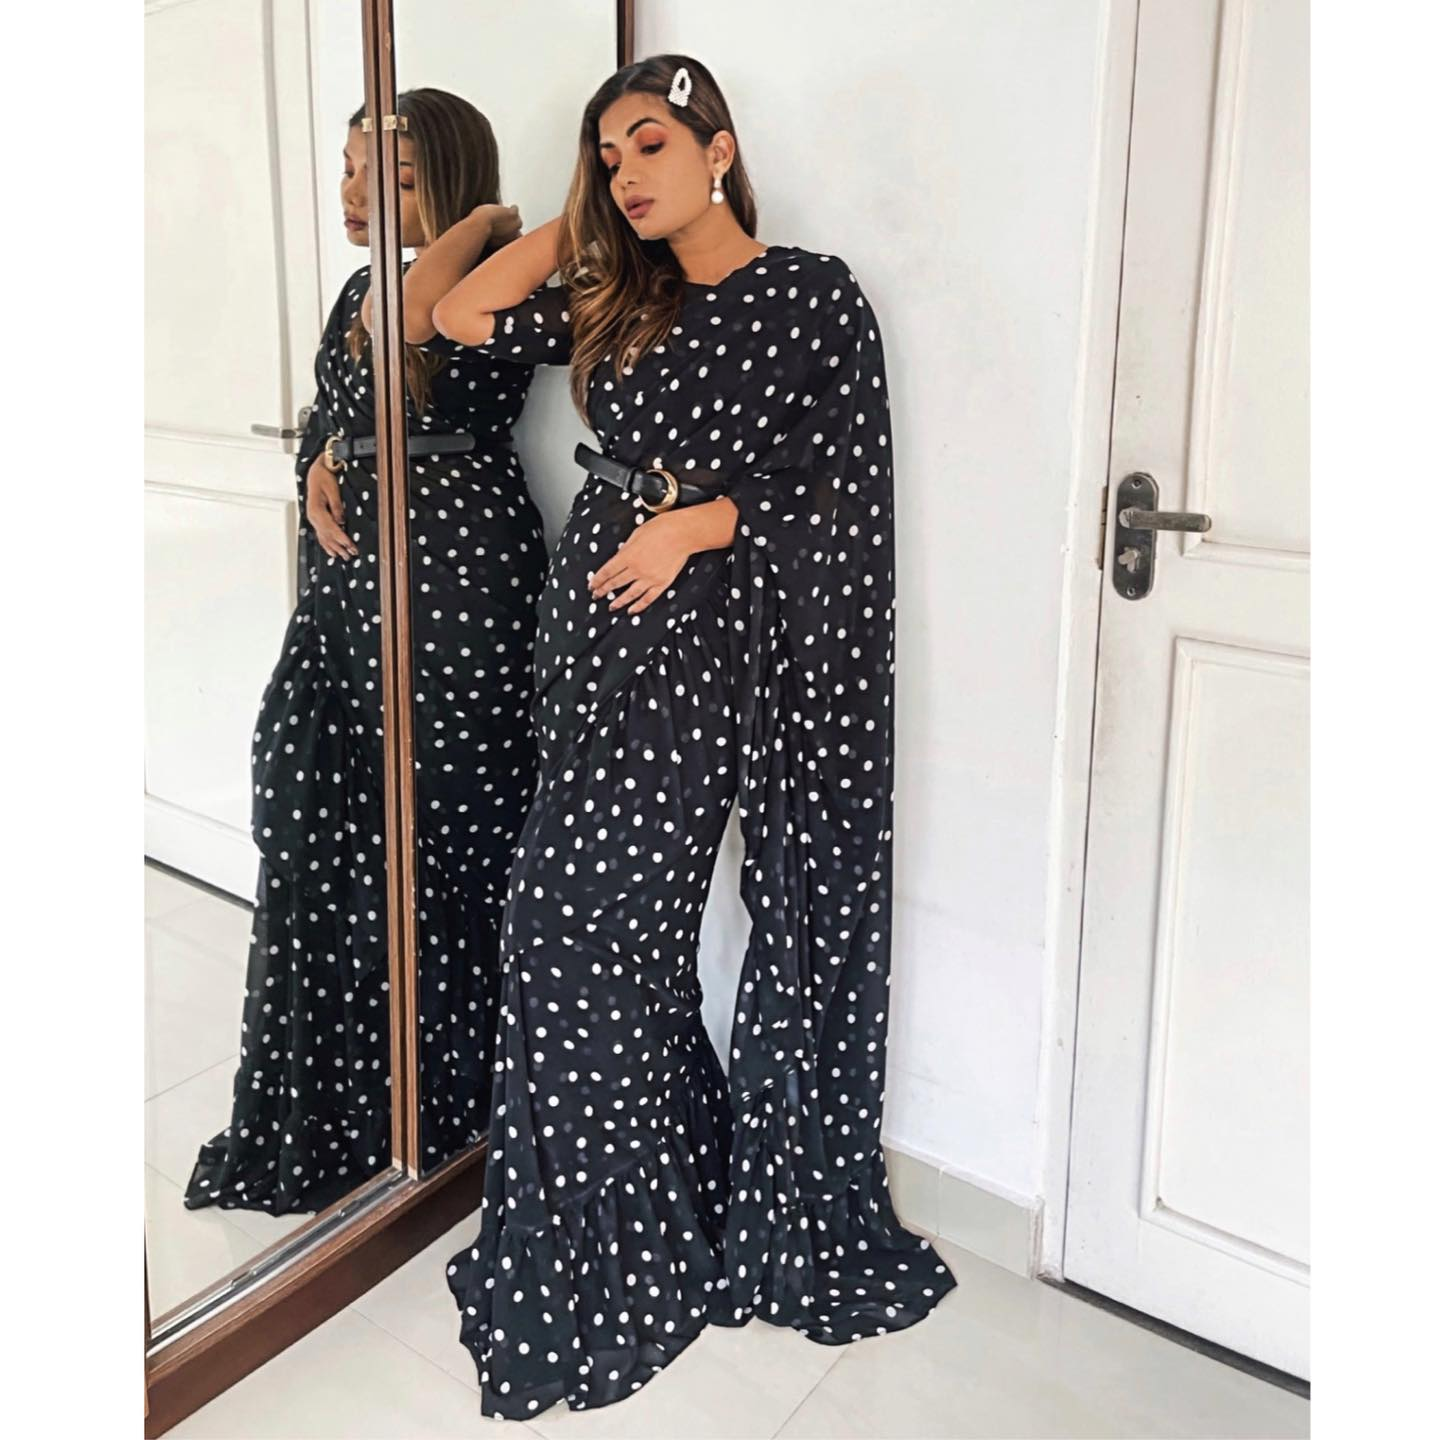 Beautiful monochrome polka ruffled sari in a creamy georgette. The blouse fabric is in the same fabric. Sari comes with a woven tassel fringe belt in black. 2021-05-11